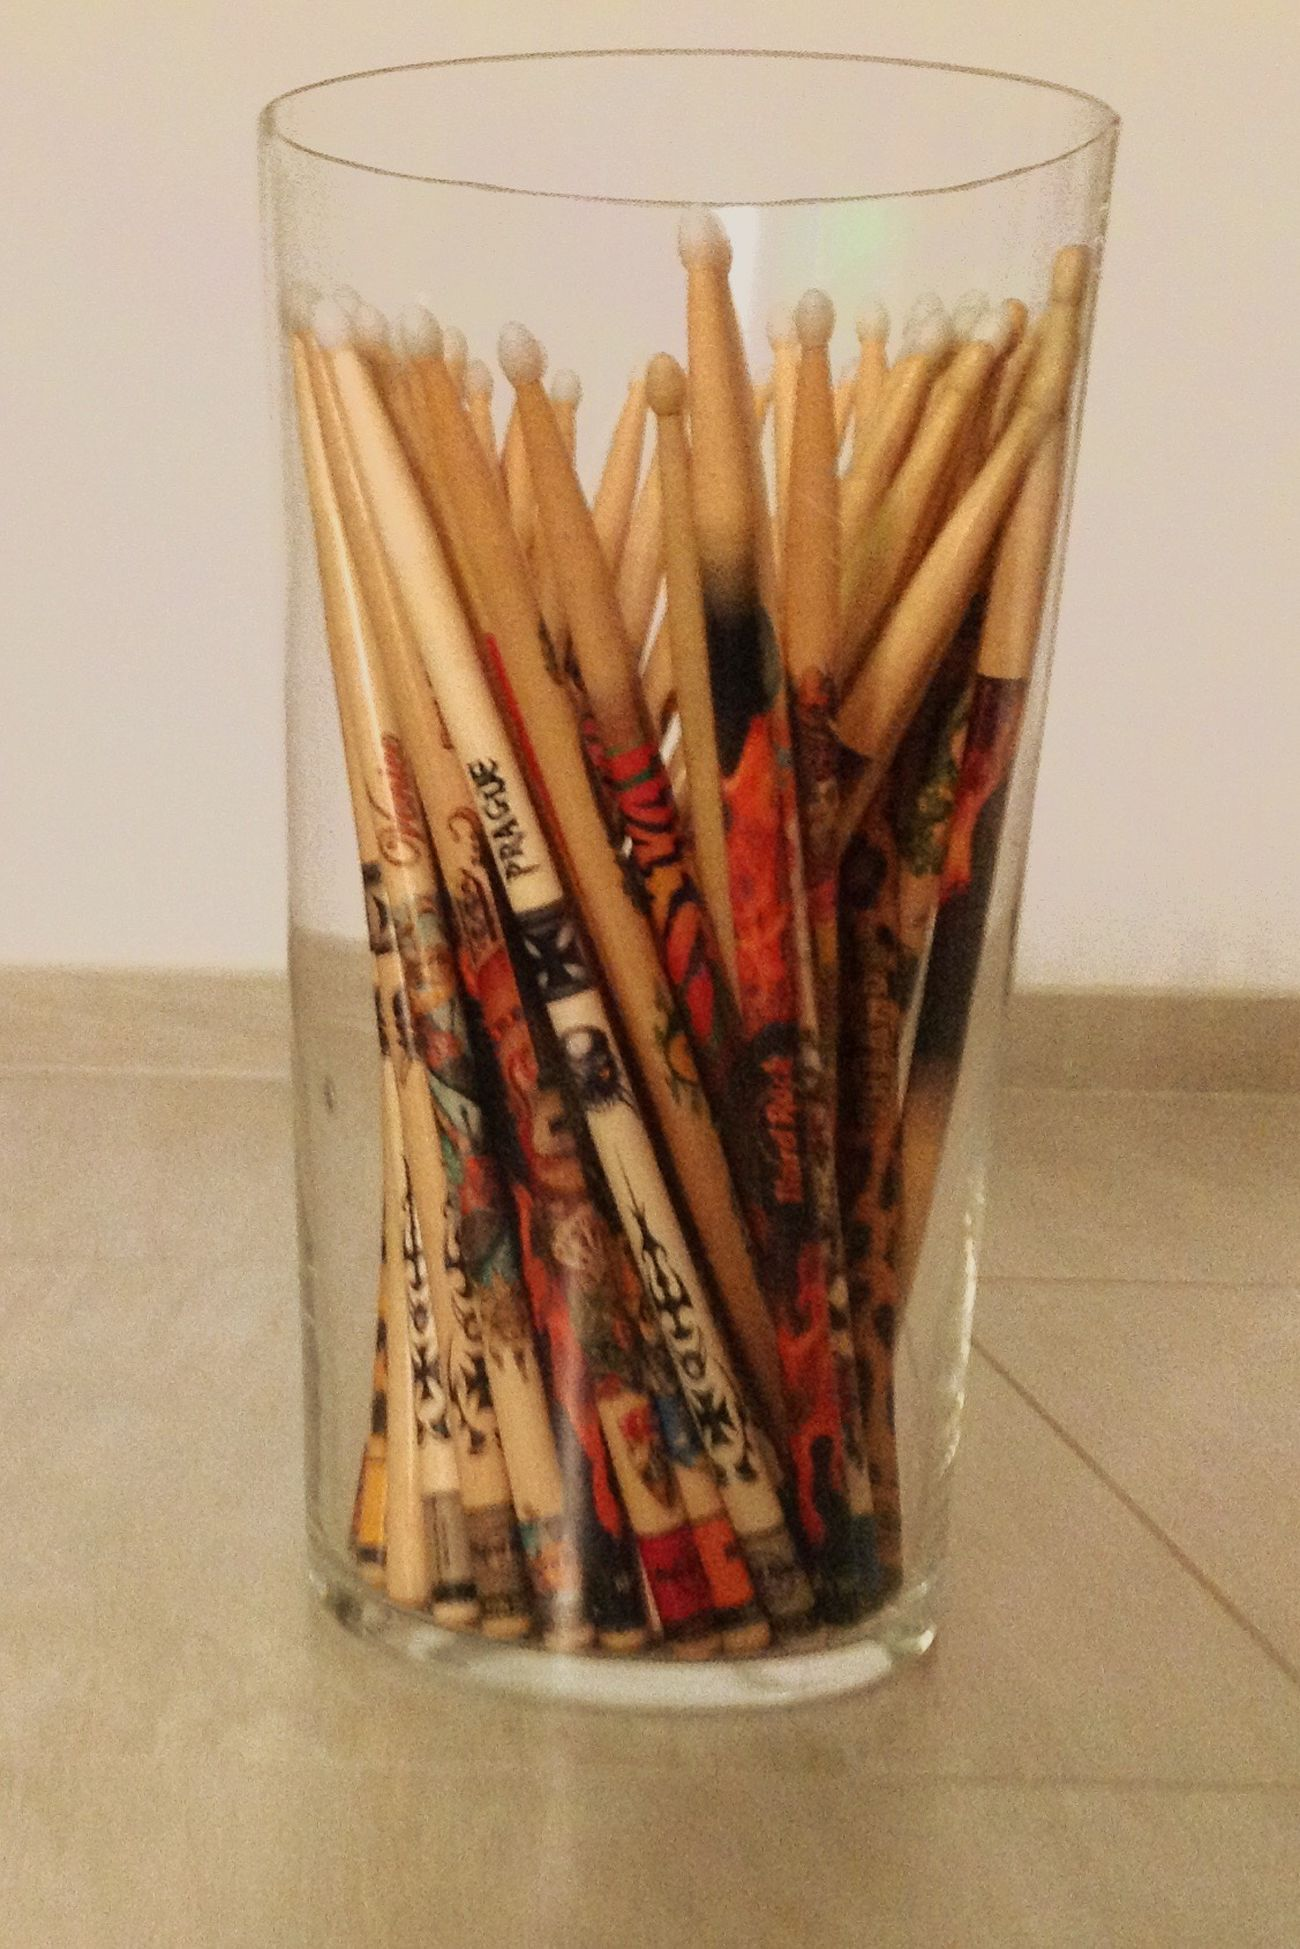 Drumsticks Hardrockcafe Collection Collections Drum Sticks Indoors